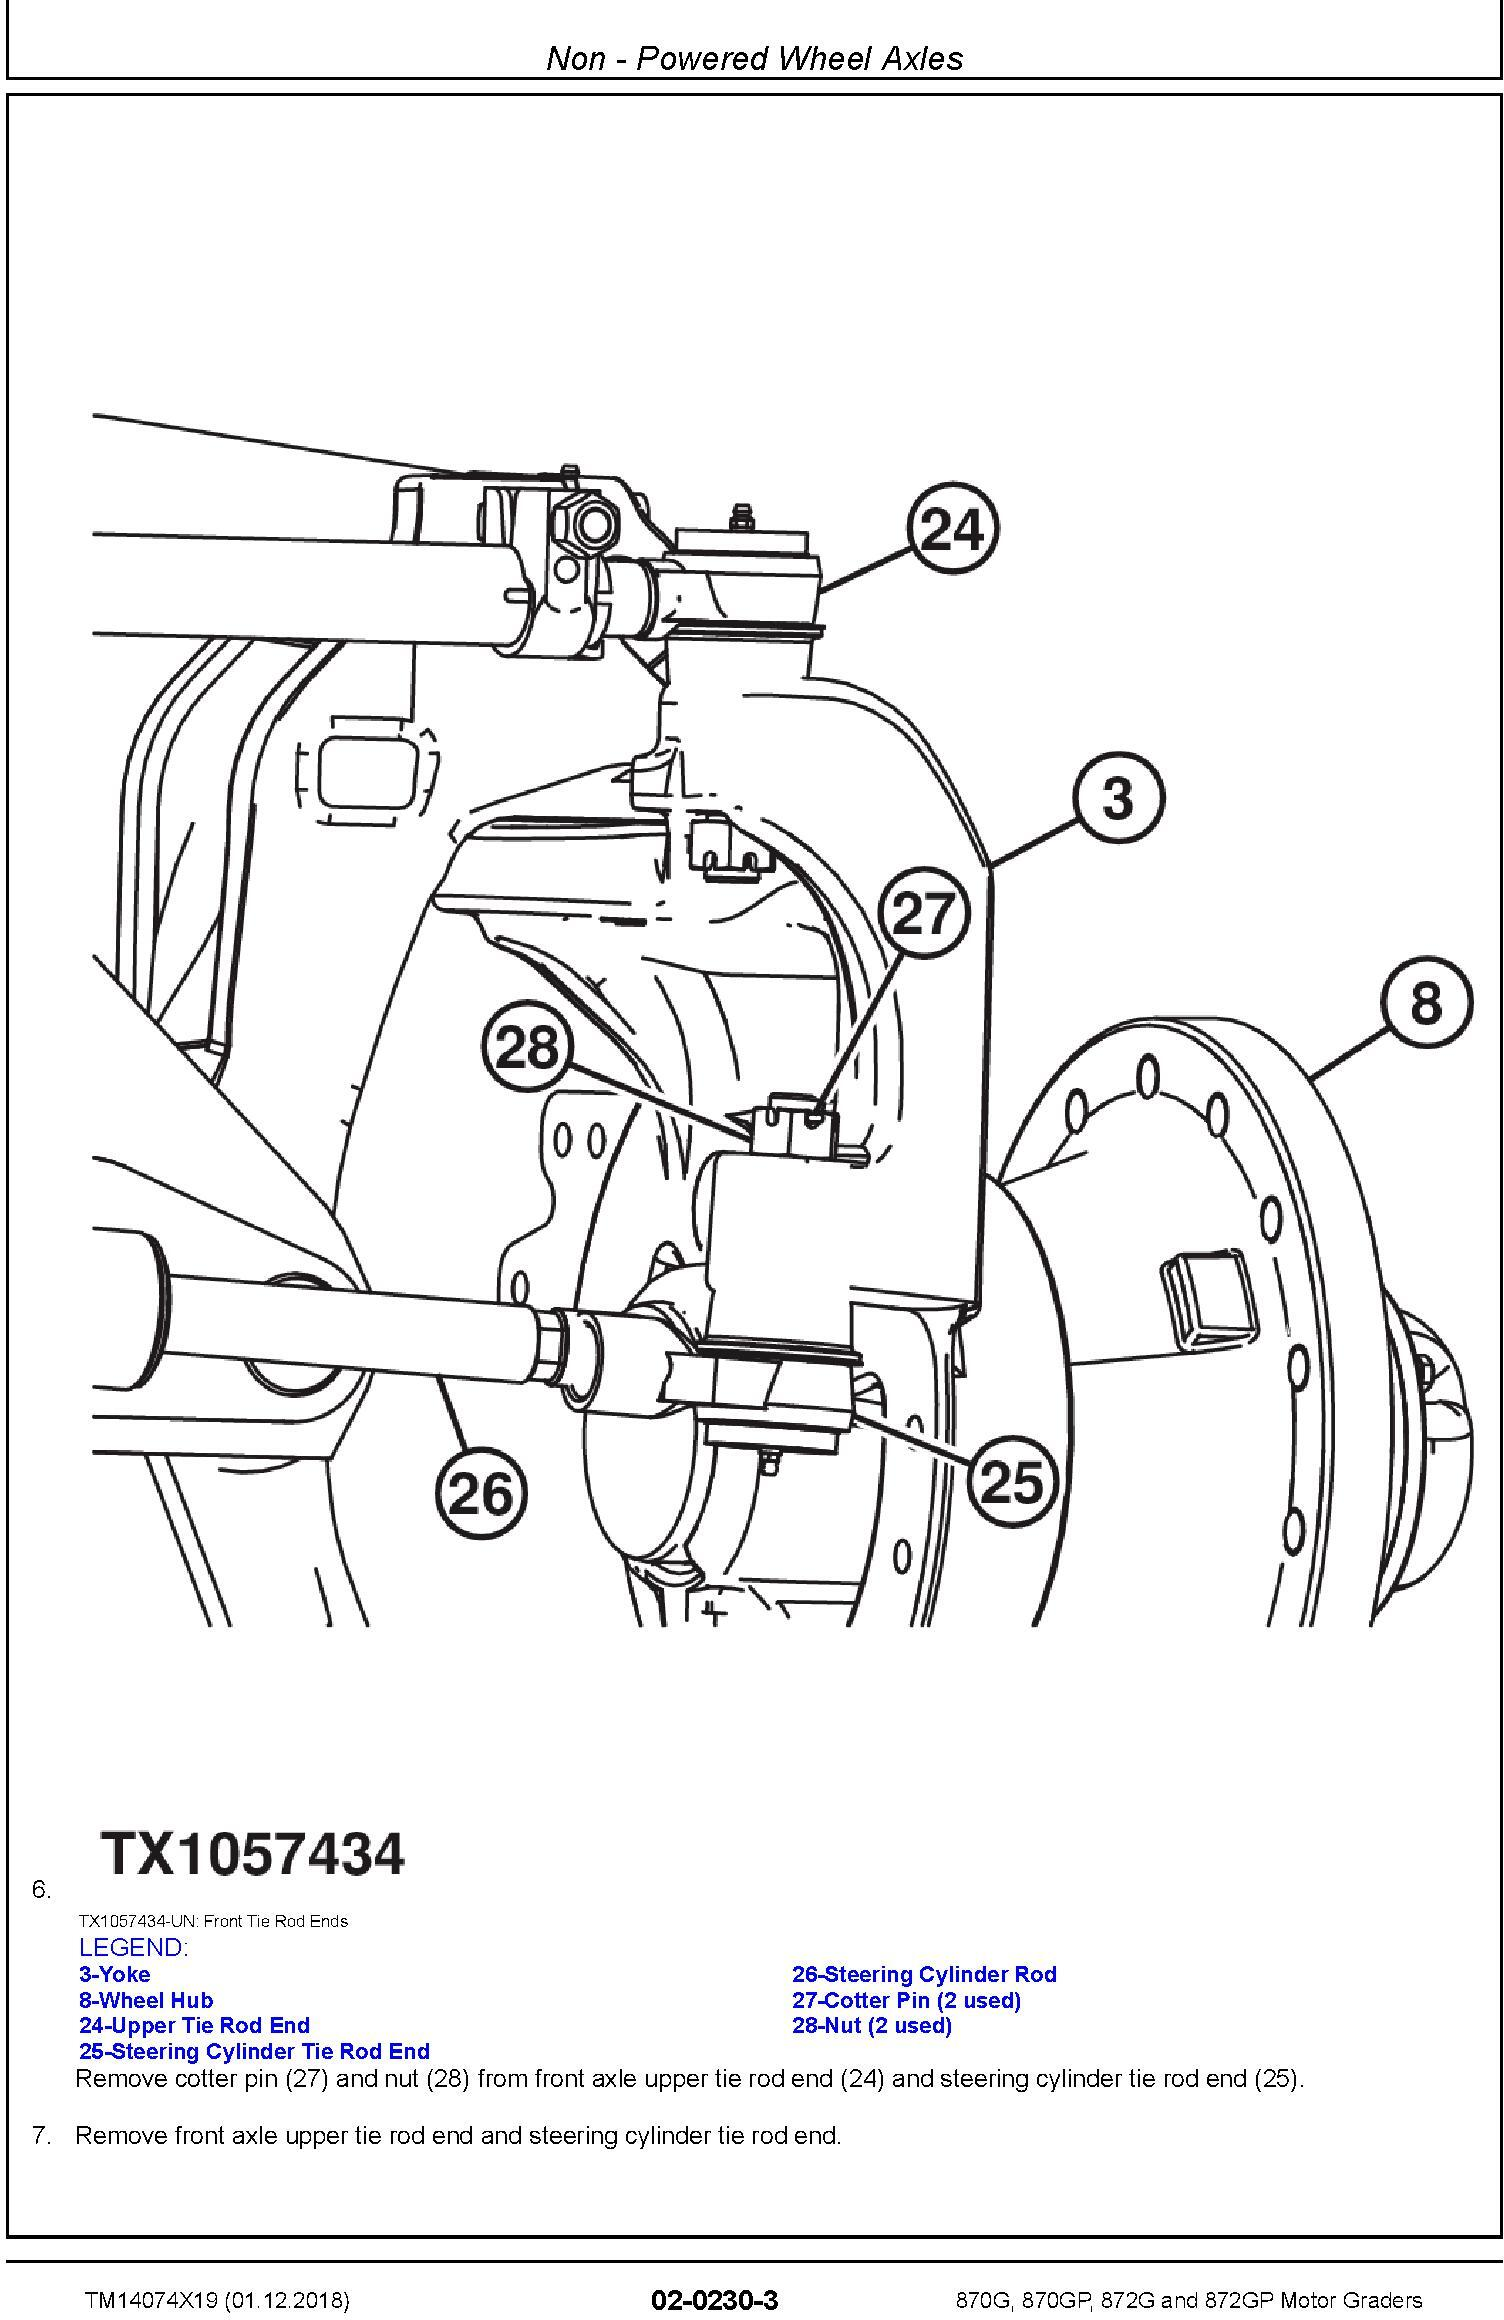 John Deere 870G, 870GP, 872G, 872GP (SN. F678818-680877) Motor Graders Repair Manual (TM14074X19) - 1